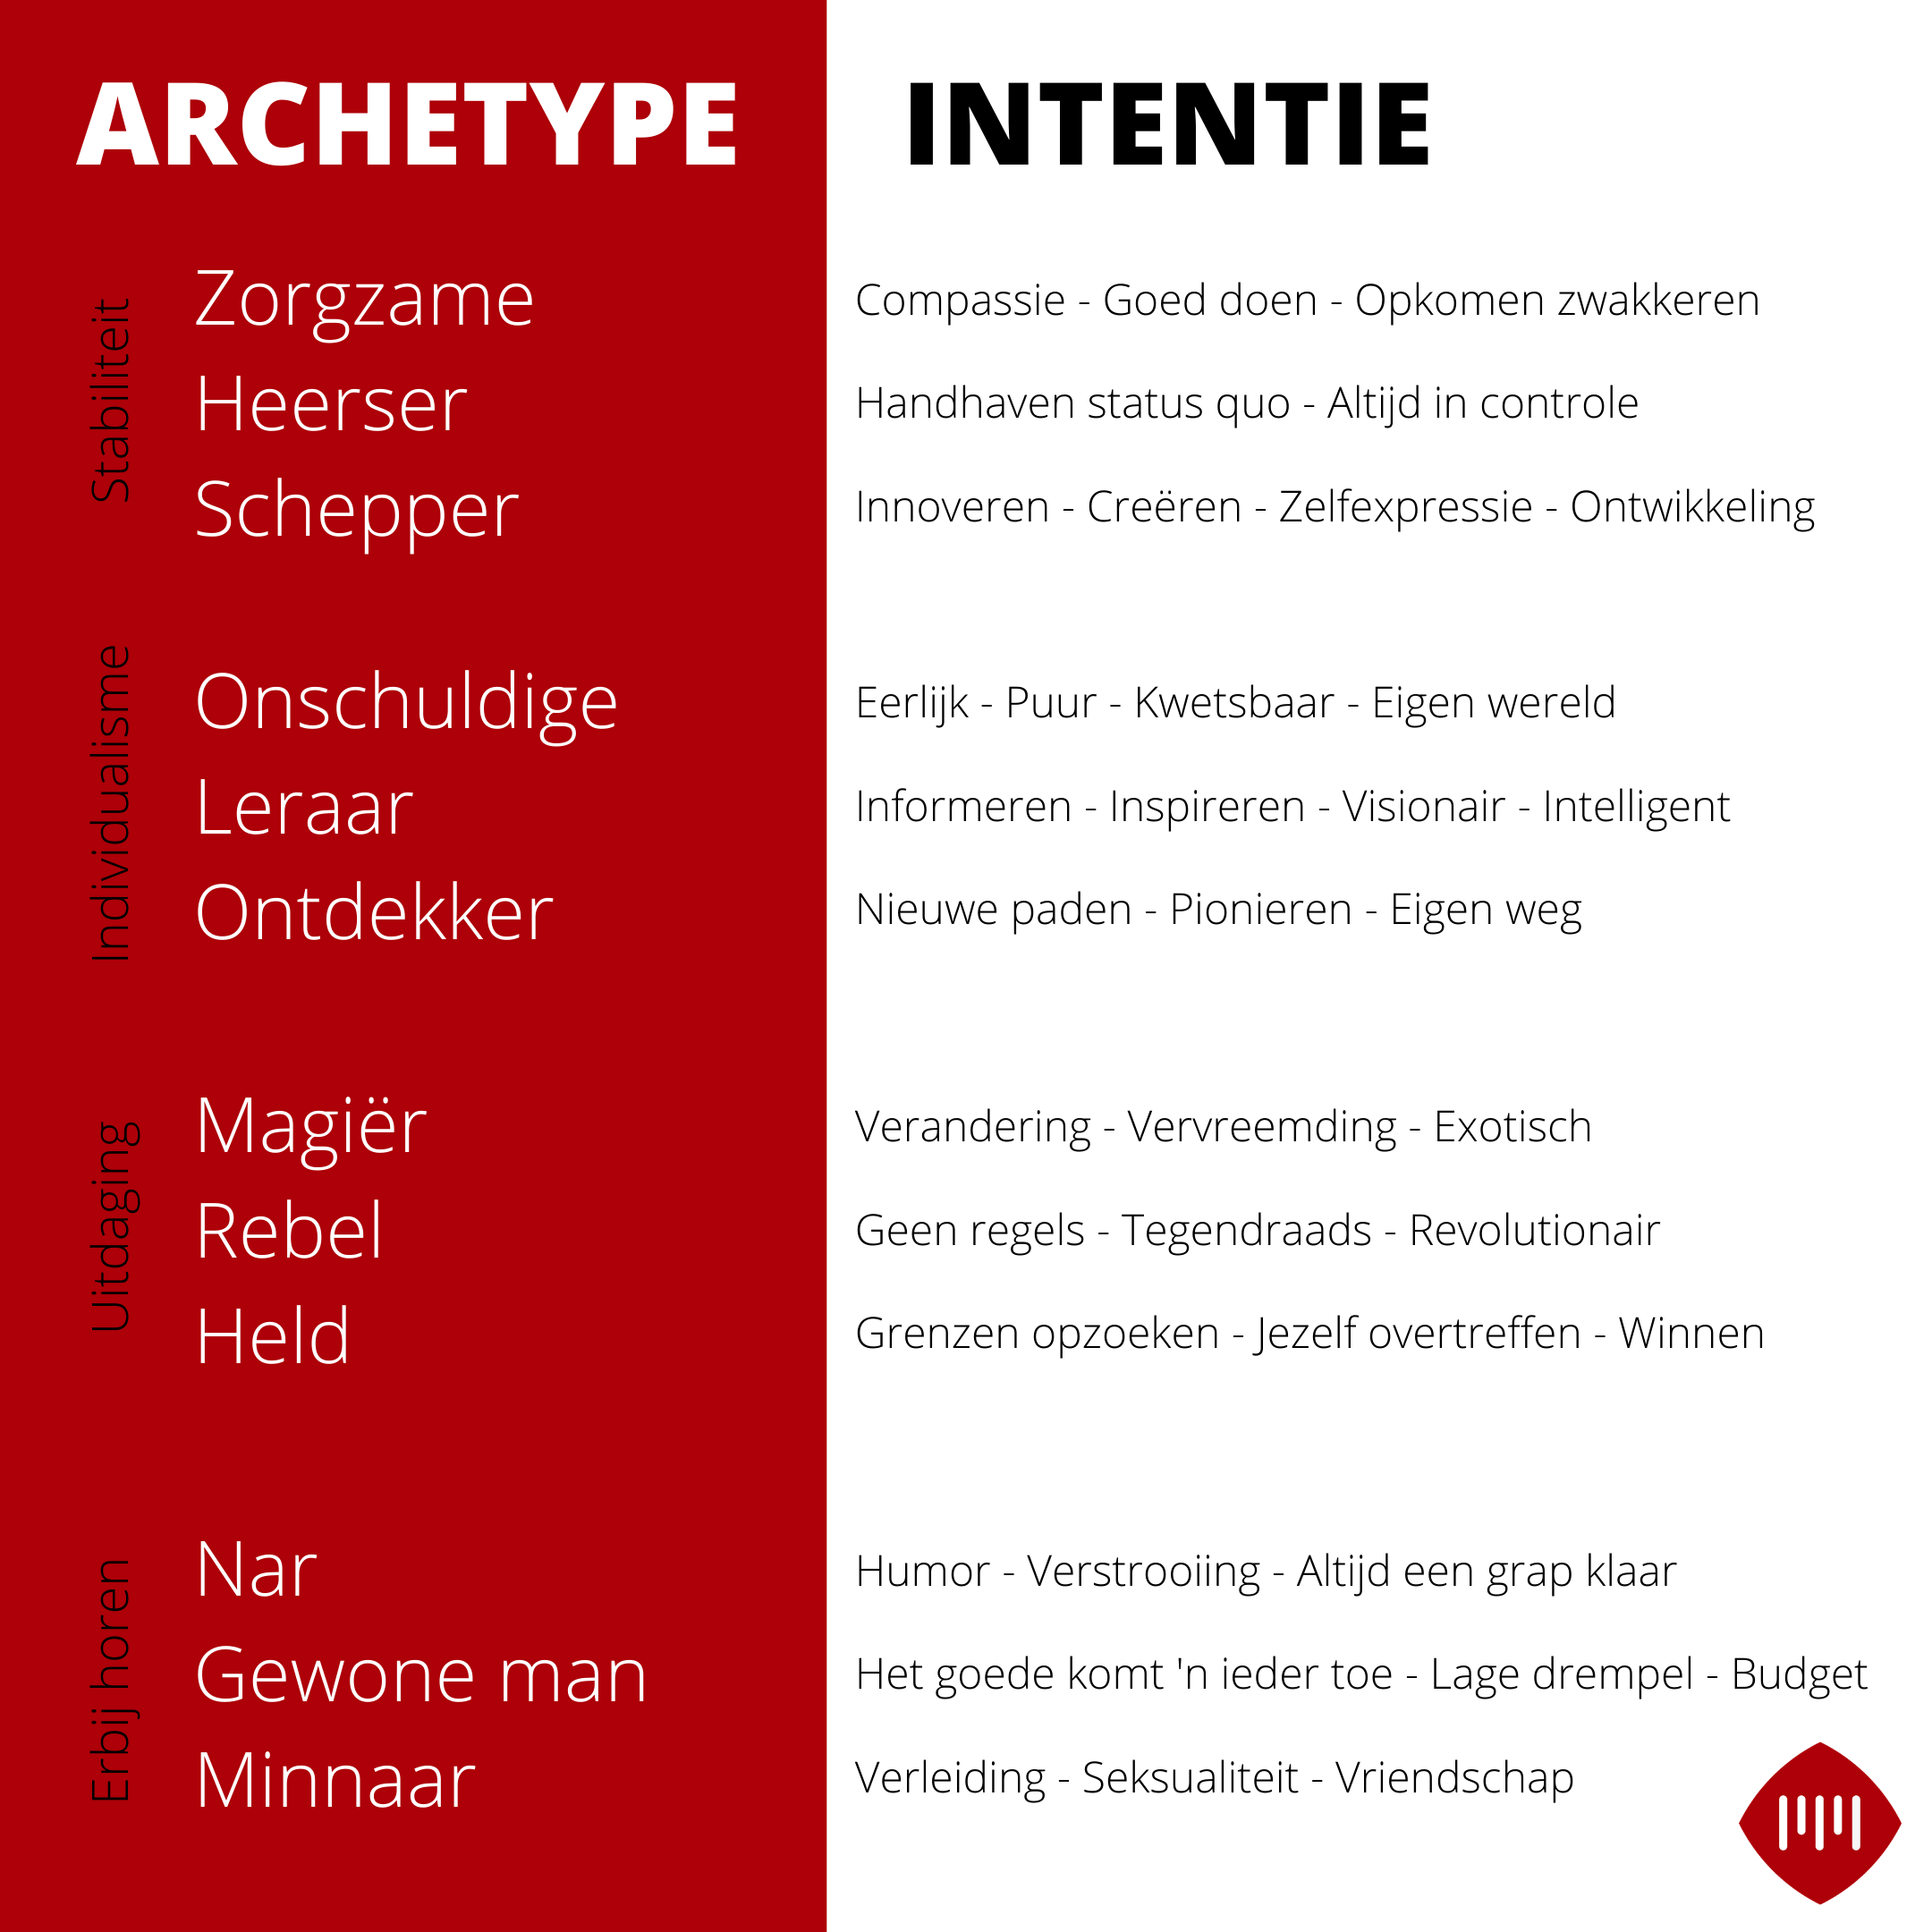 Archetypes voor merken en intenties